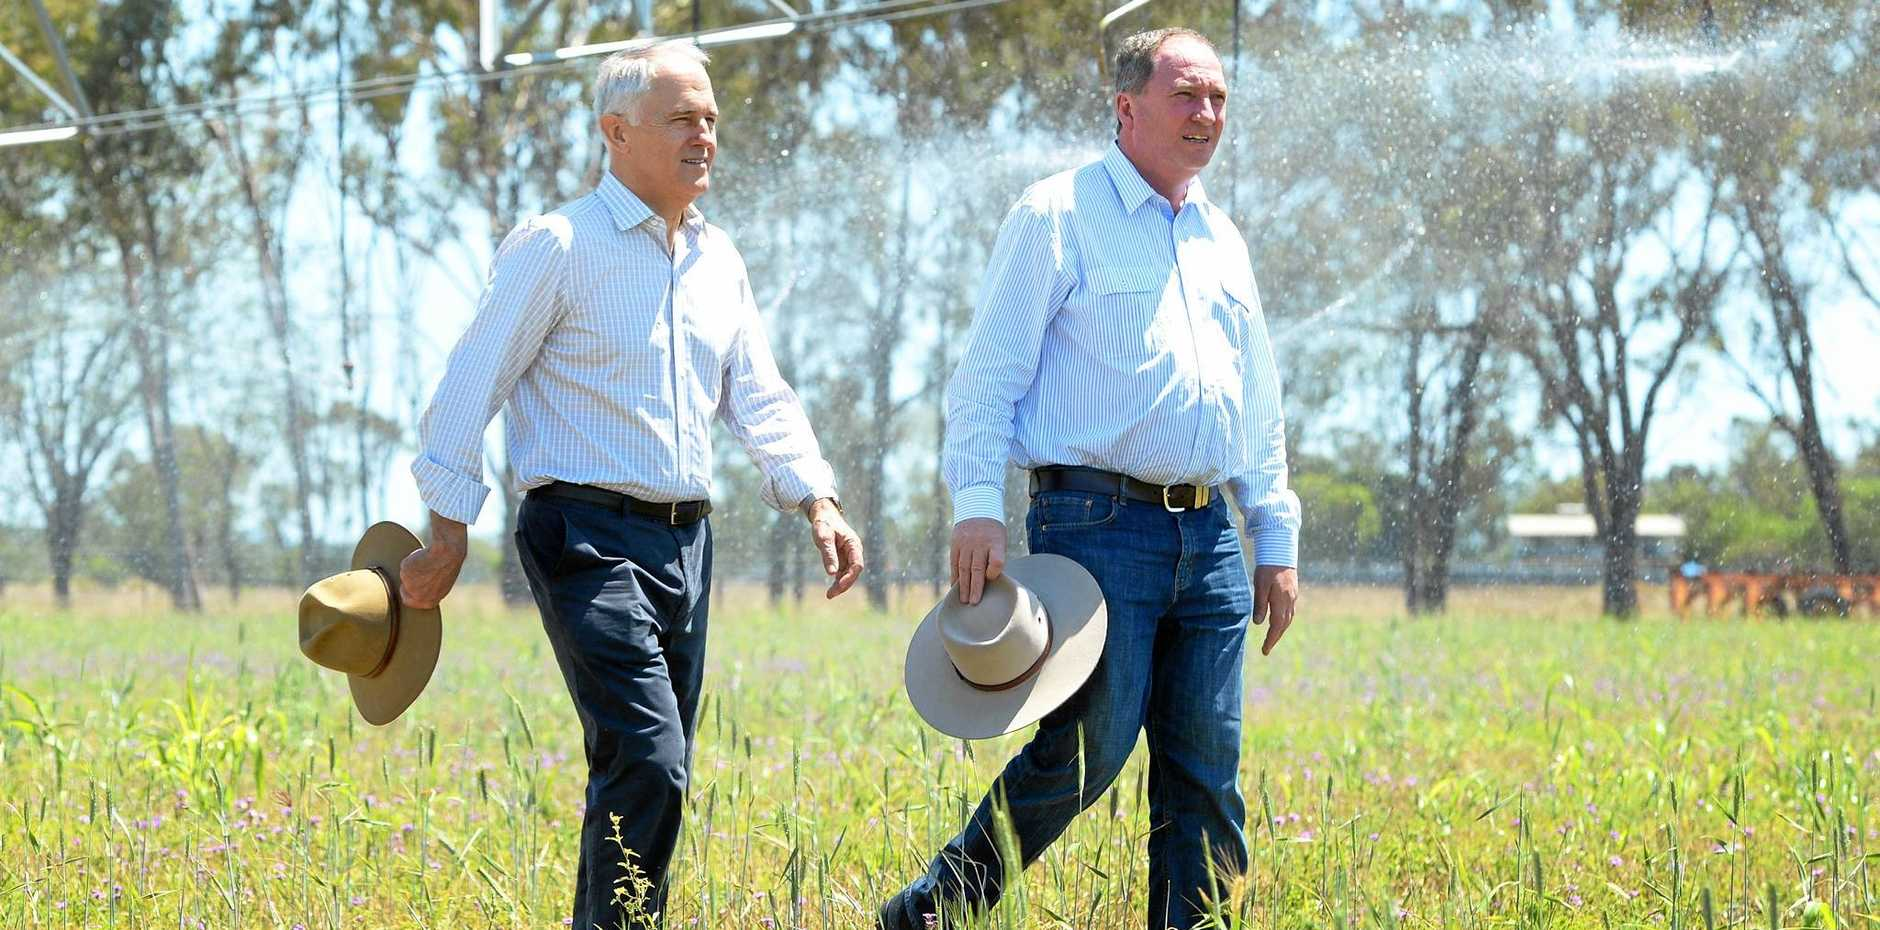 L-R Prime Minister Malcolm Turnbull and Deputy Prime Minister Barnaby Joyce tour a farm on the outskirts of Rockhampton to talk about infrastructure spending including the proposed Rookwood Weir.